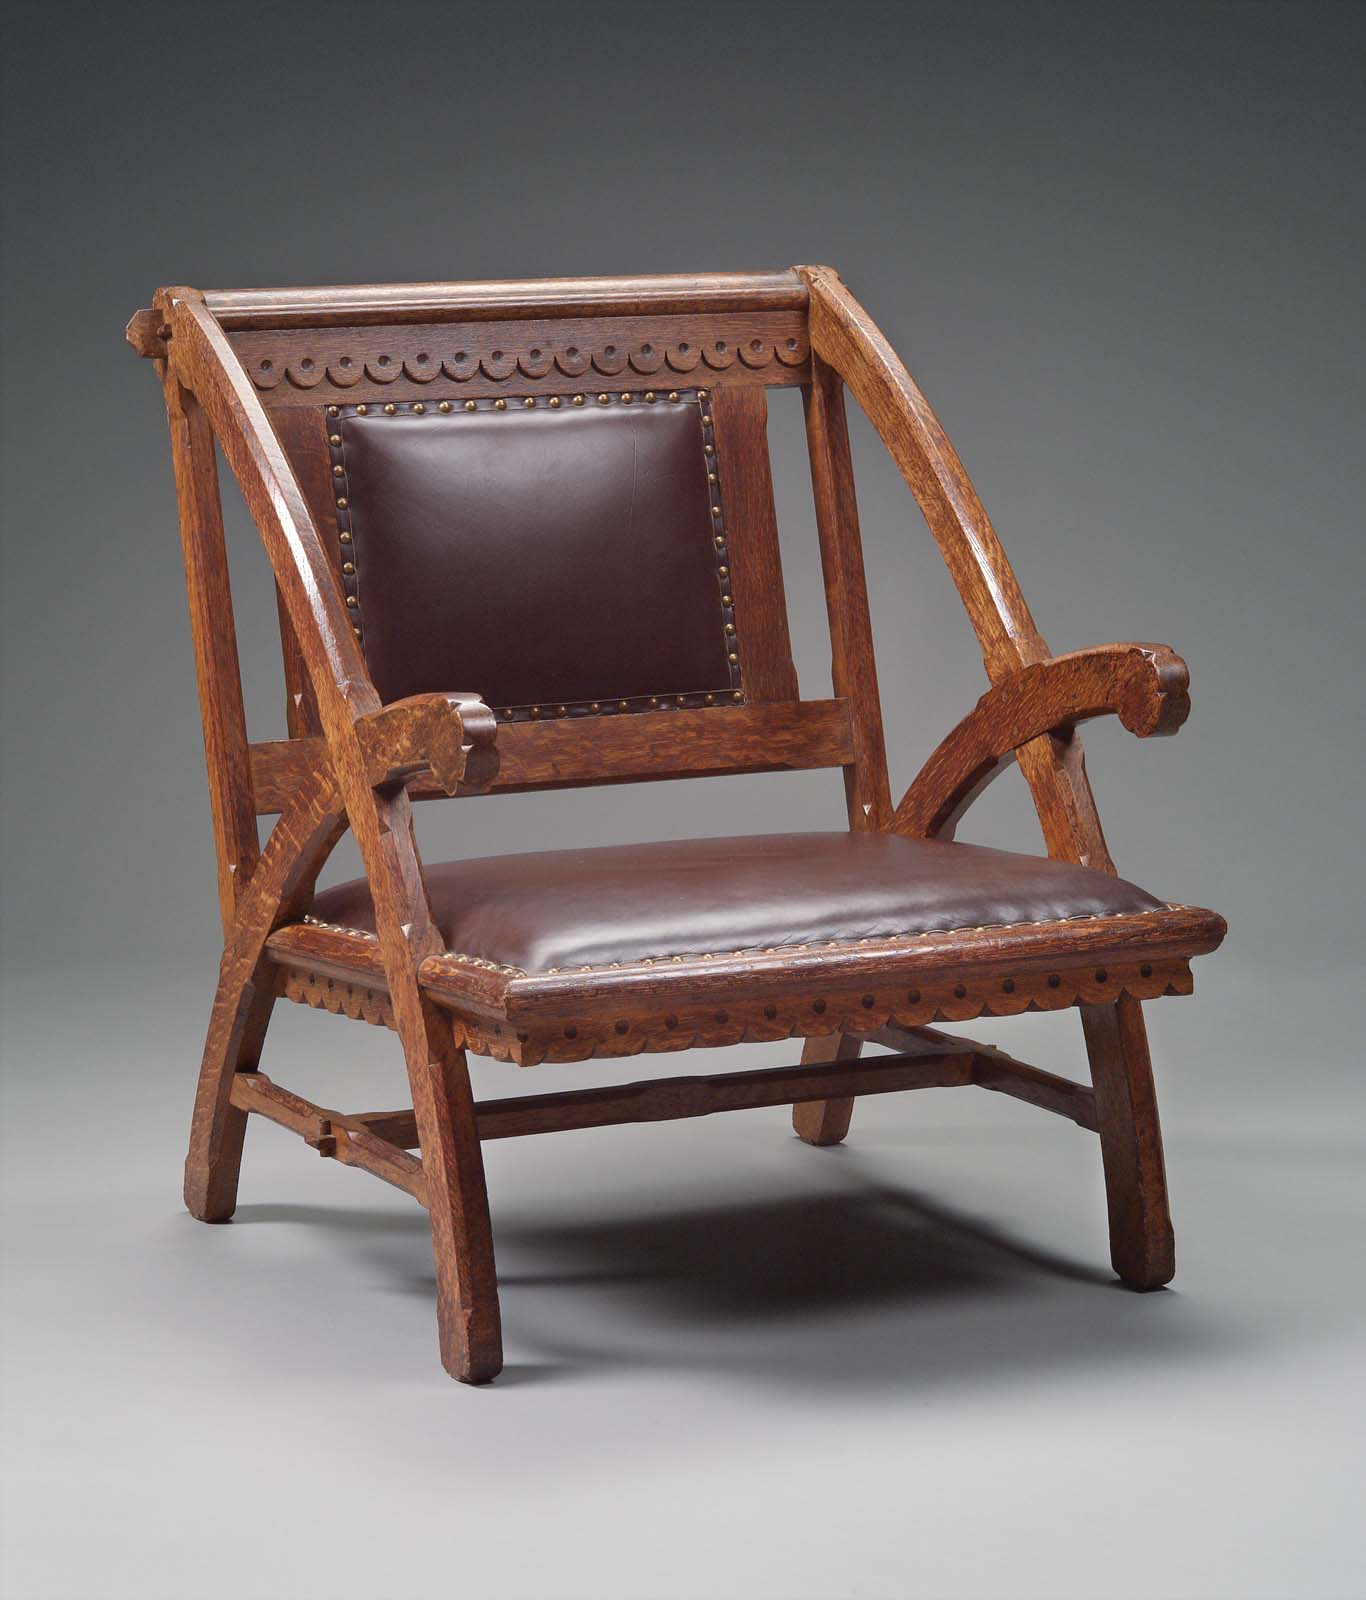 armchair for the woburn public library museum of fine arts boston